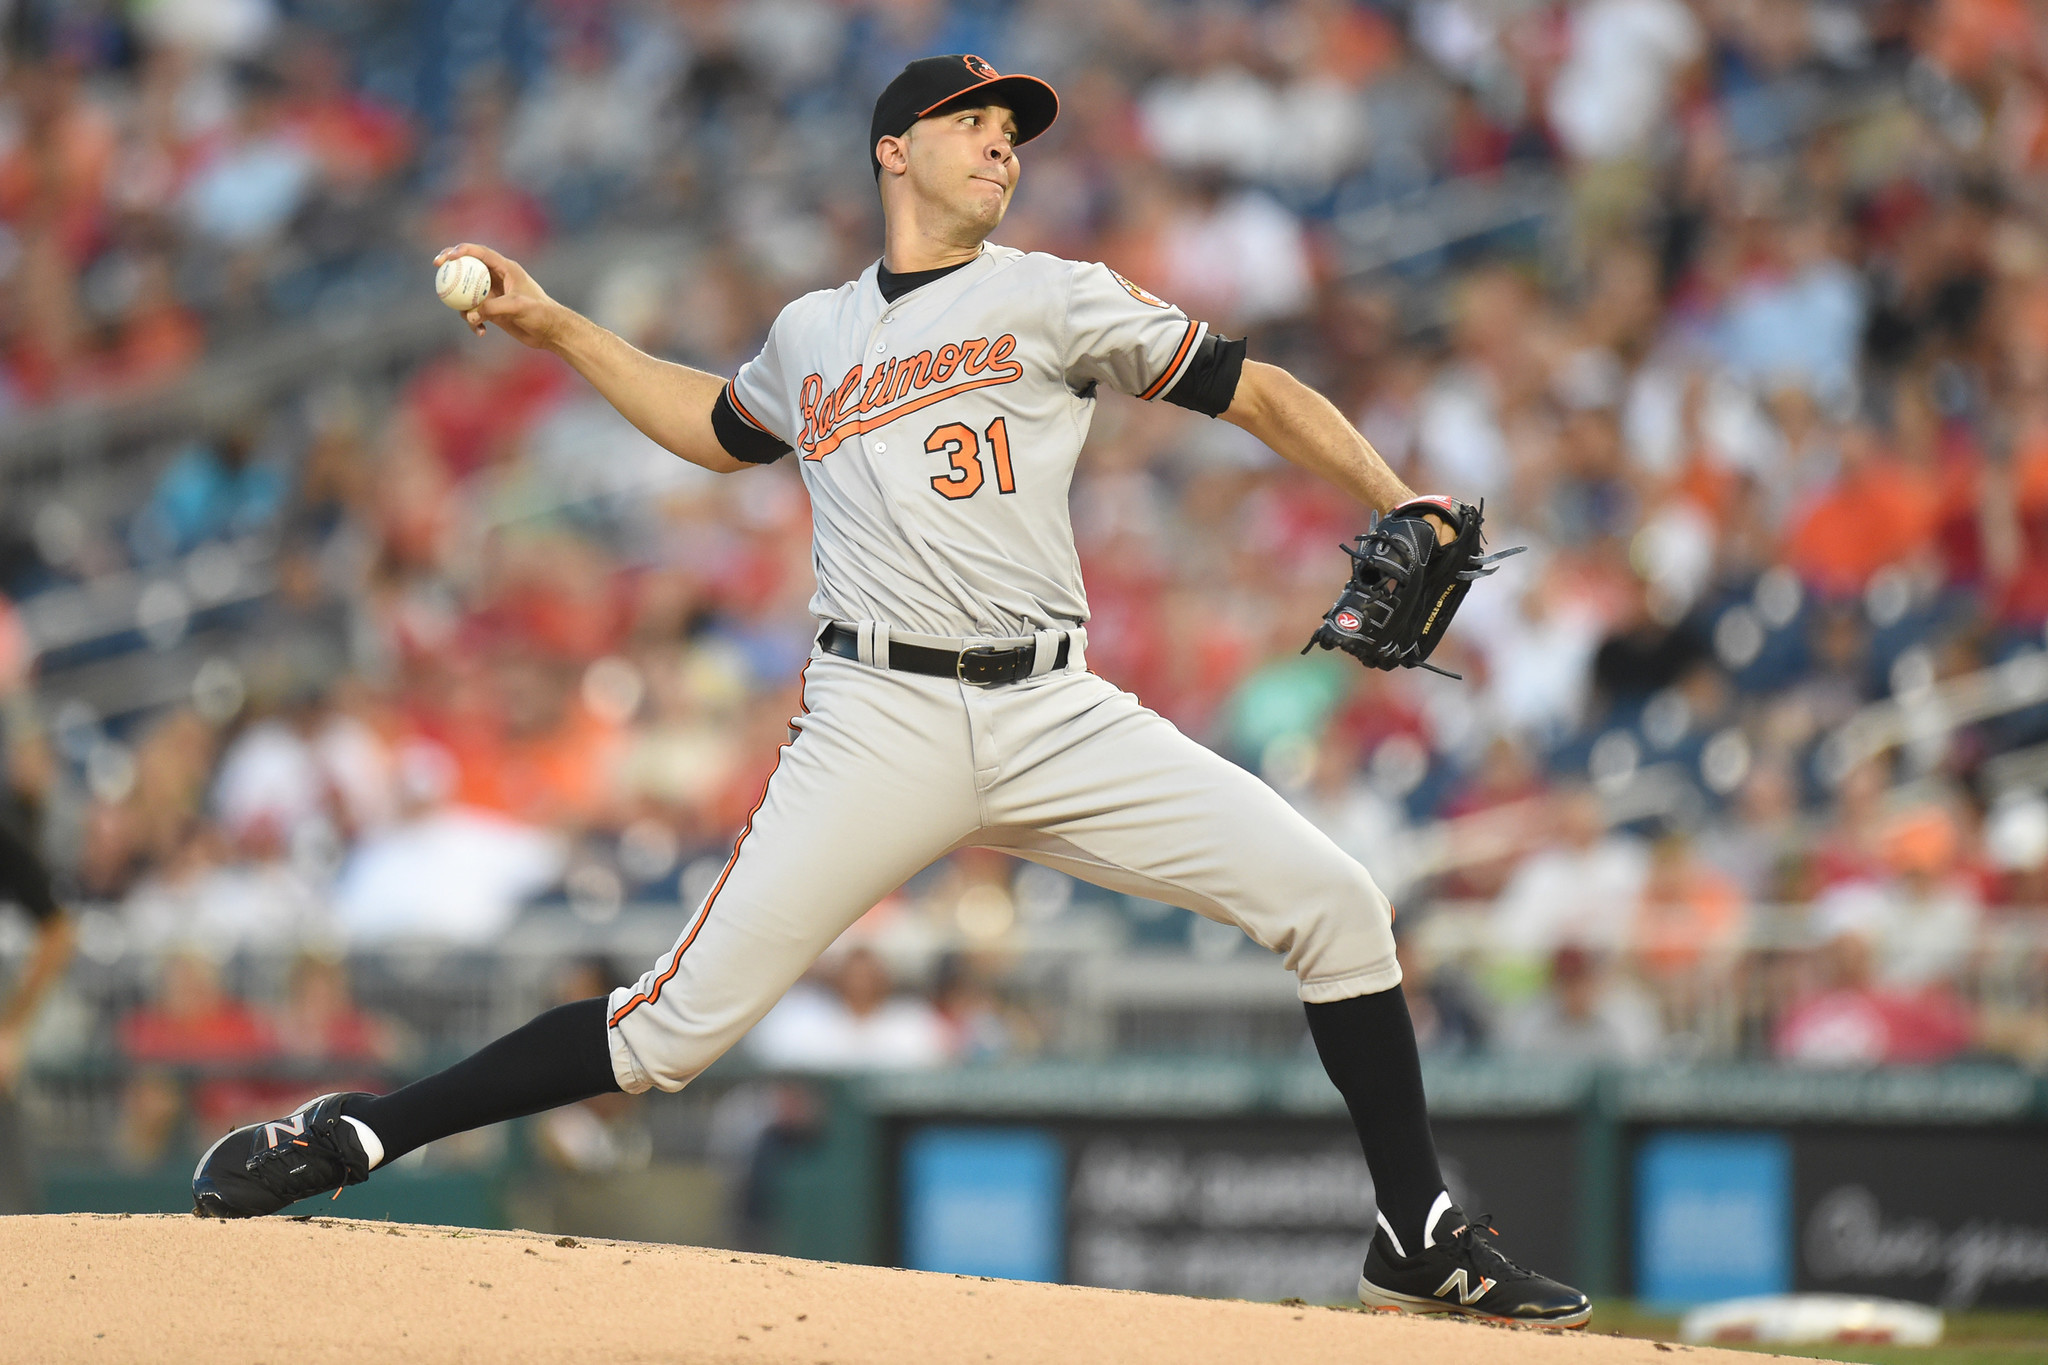 Bal-orioles-on-deck-what-to-watch-tuesday-vs-blue-jays-20160830